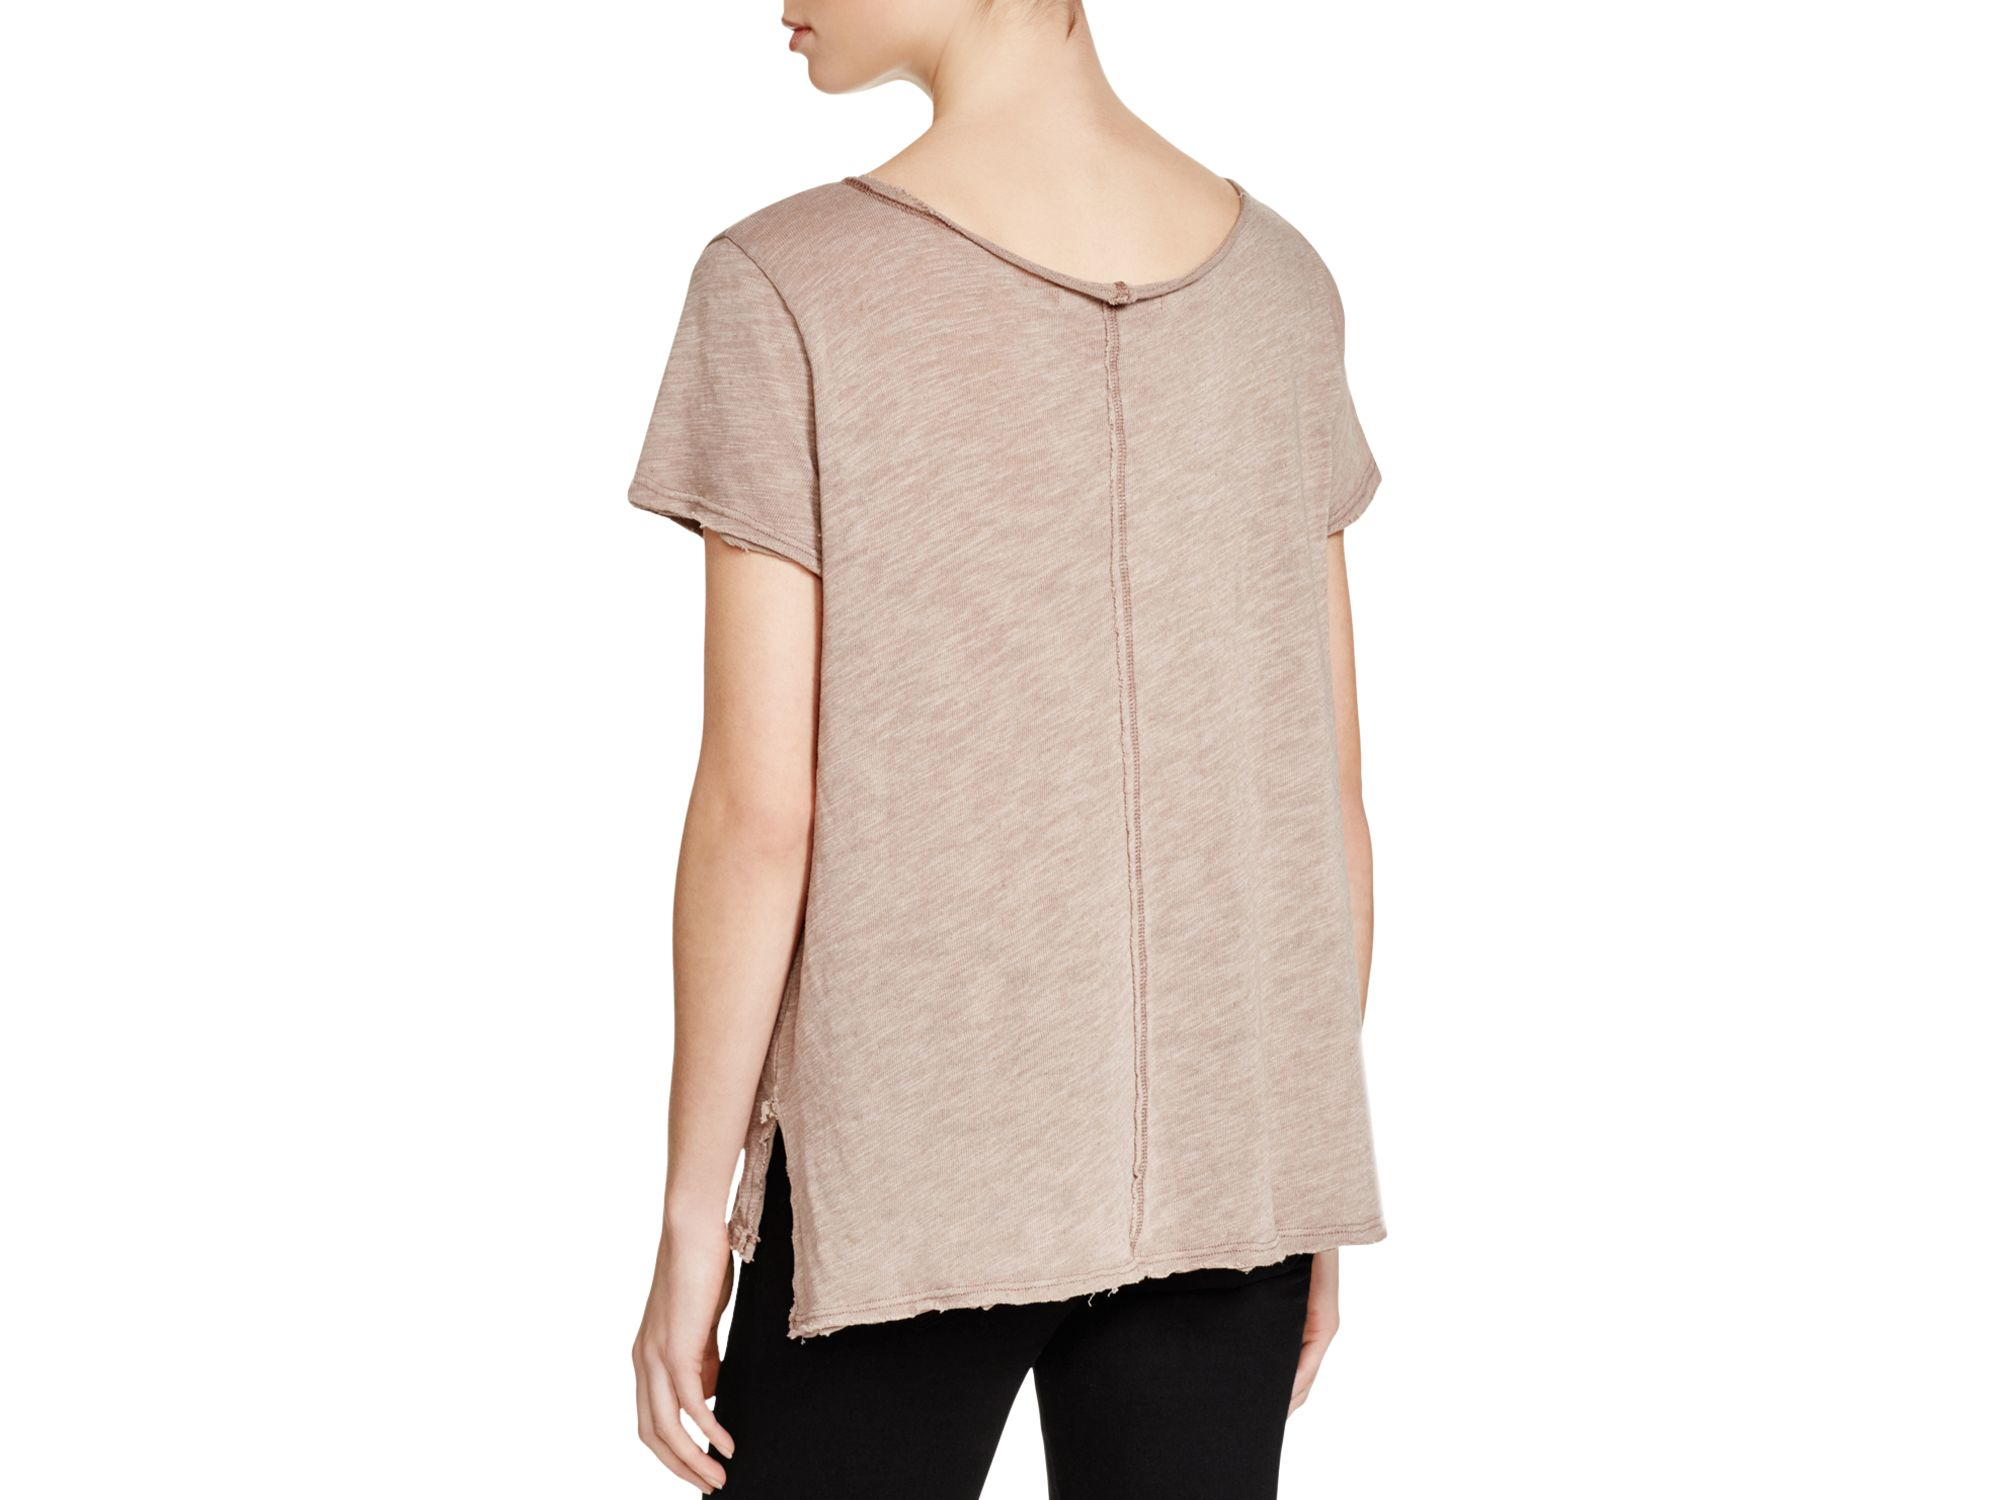 Project social t Favorite Tee in Natural